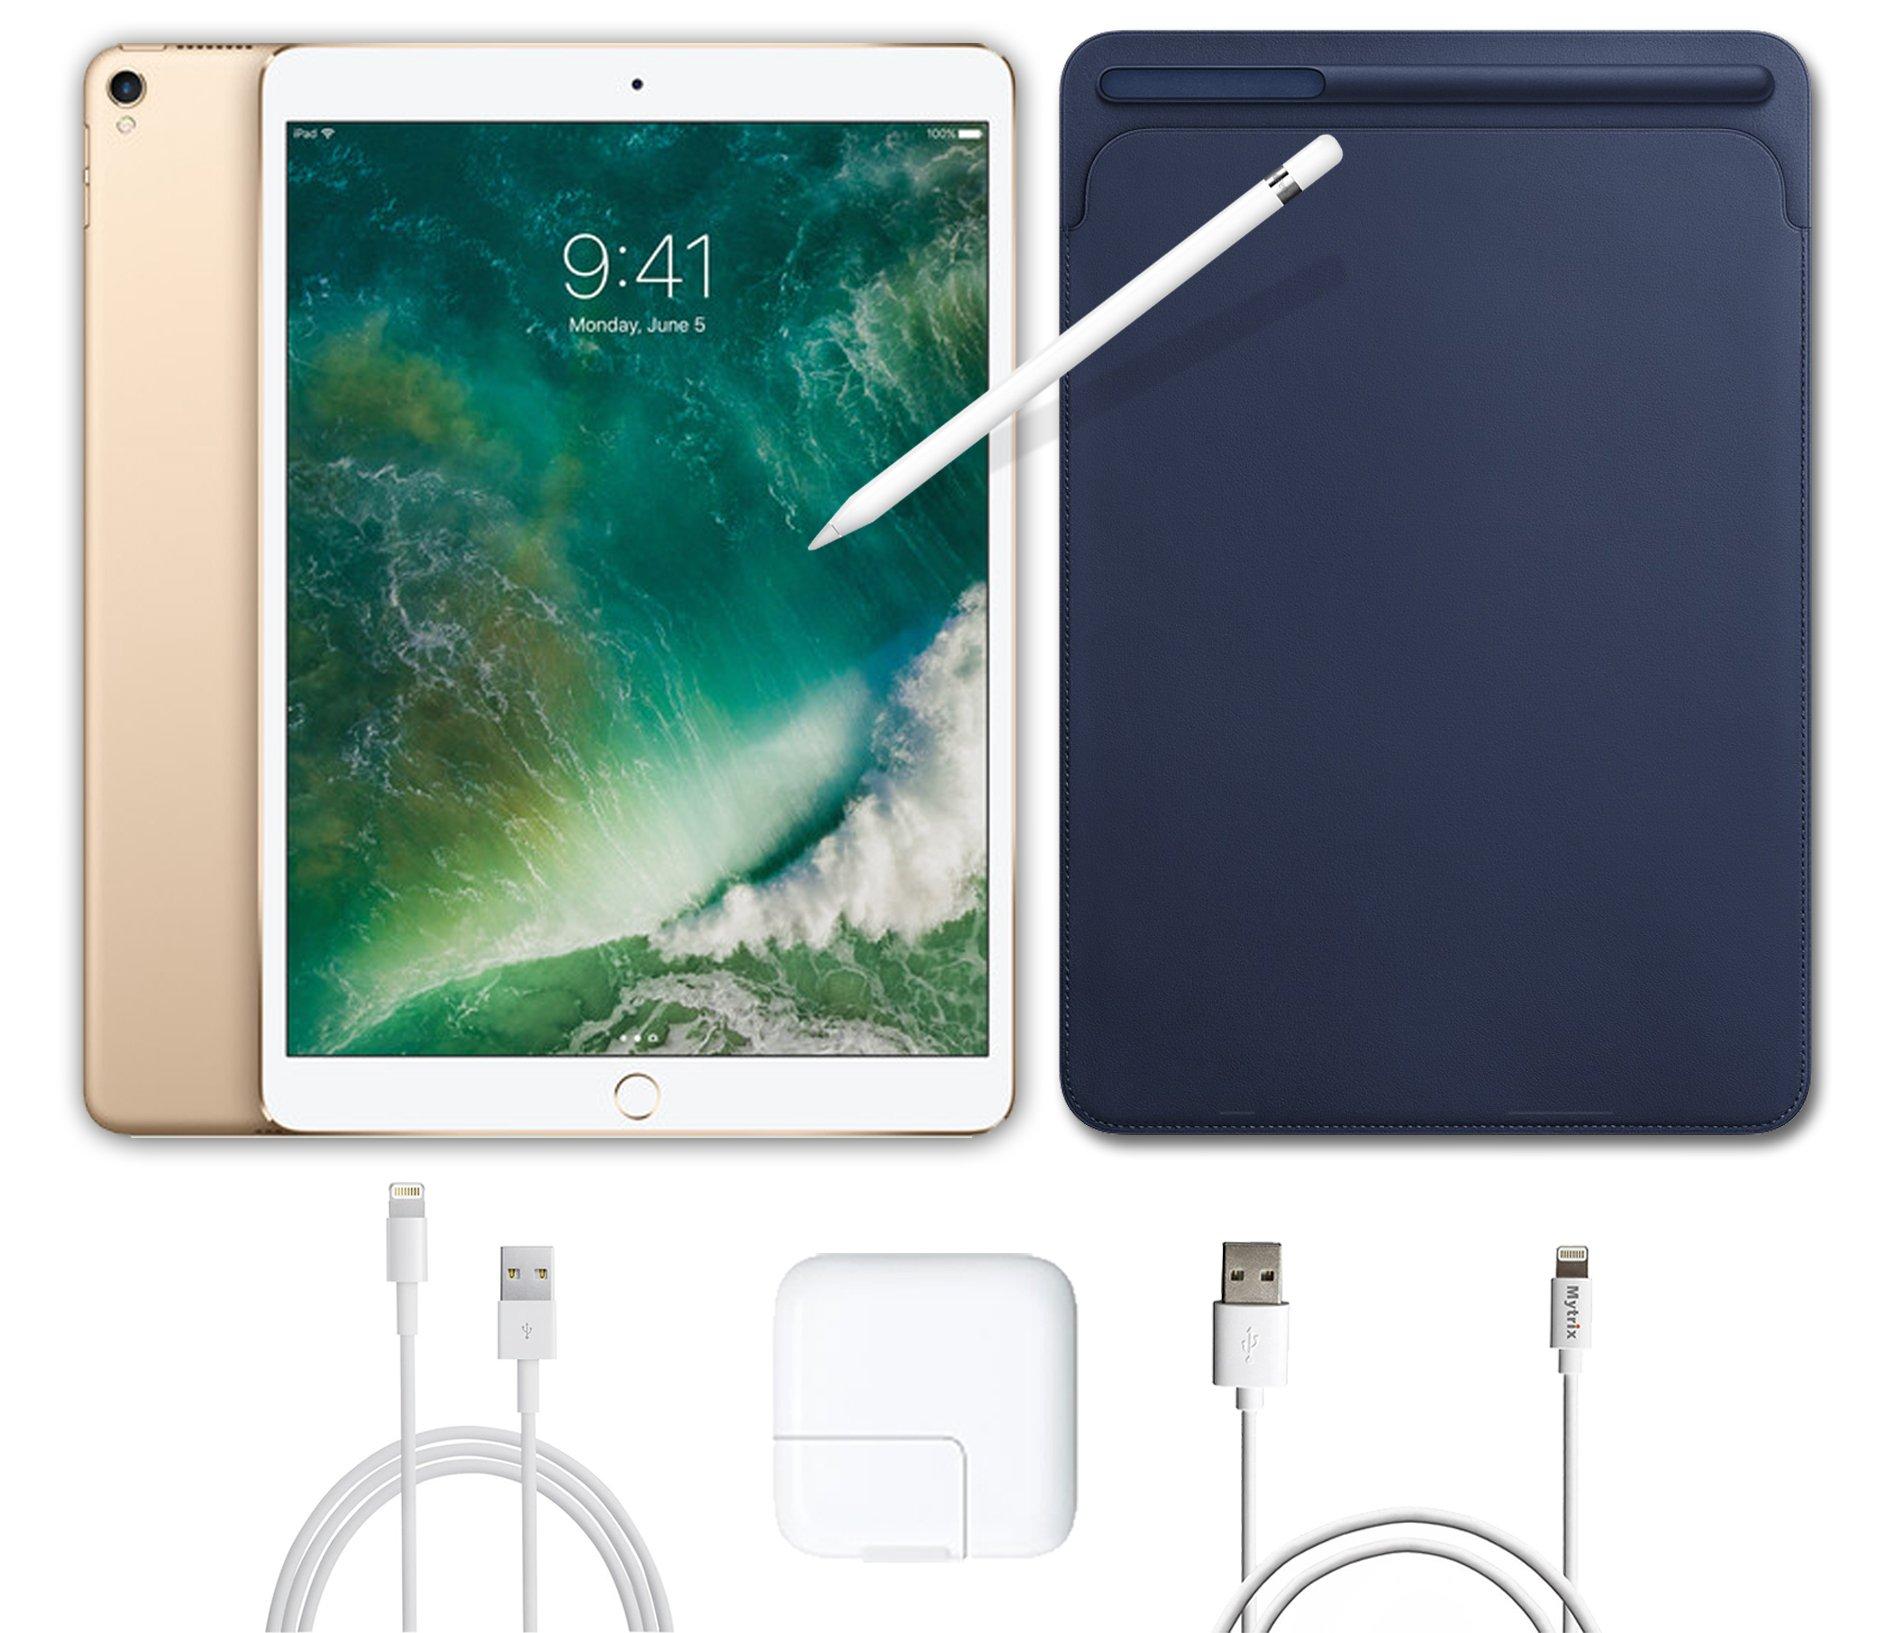 2017 New IPad Pro Bundle (4 Items): Apple 10.5 inch iPad Pro with Wi-Fi 512 GB Gold, Leather Sleeve Midnight Blue, Apple Pencil and Mytrix USB Apple Lightning Cable